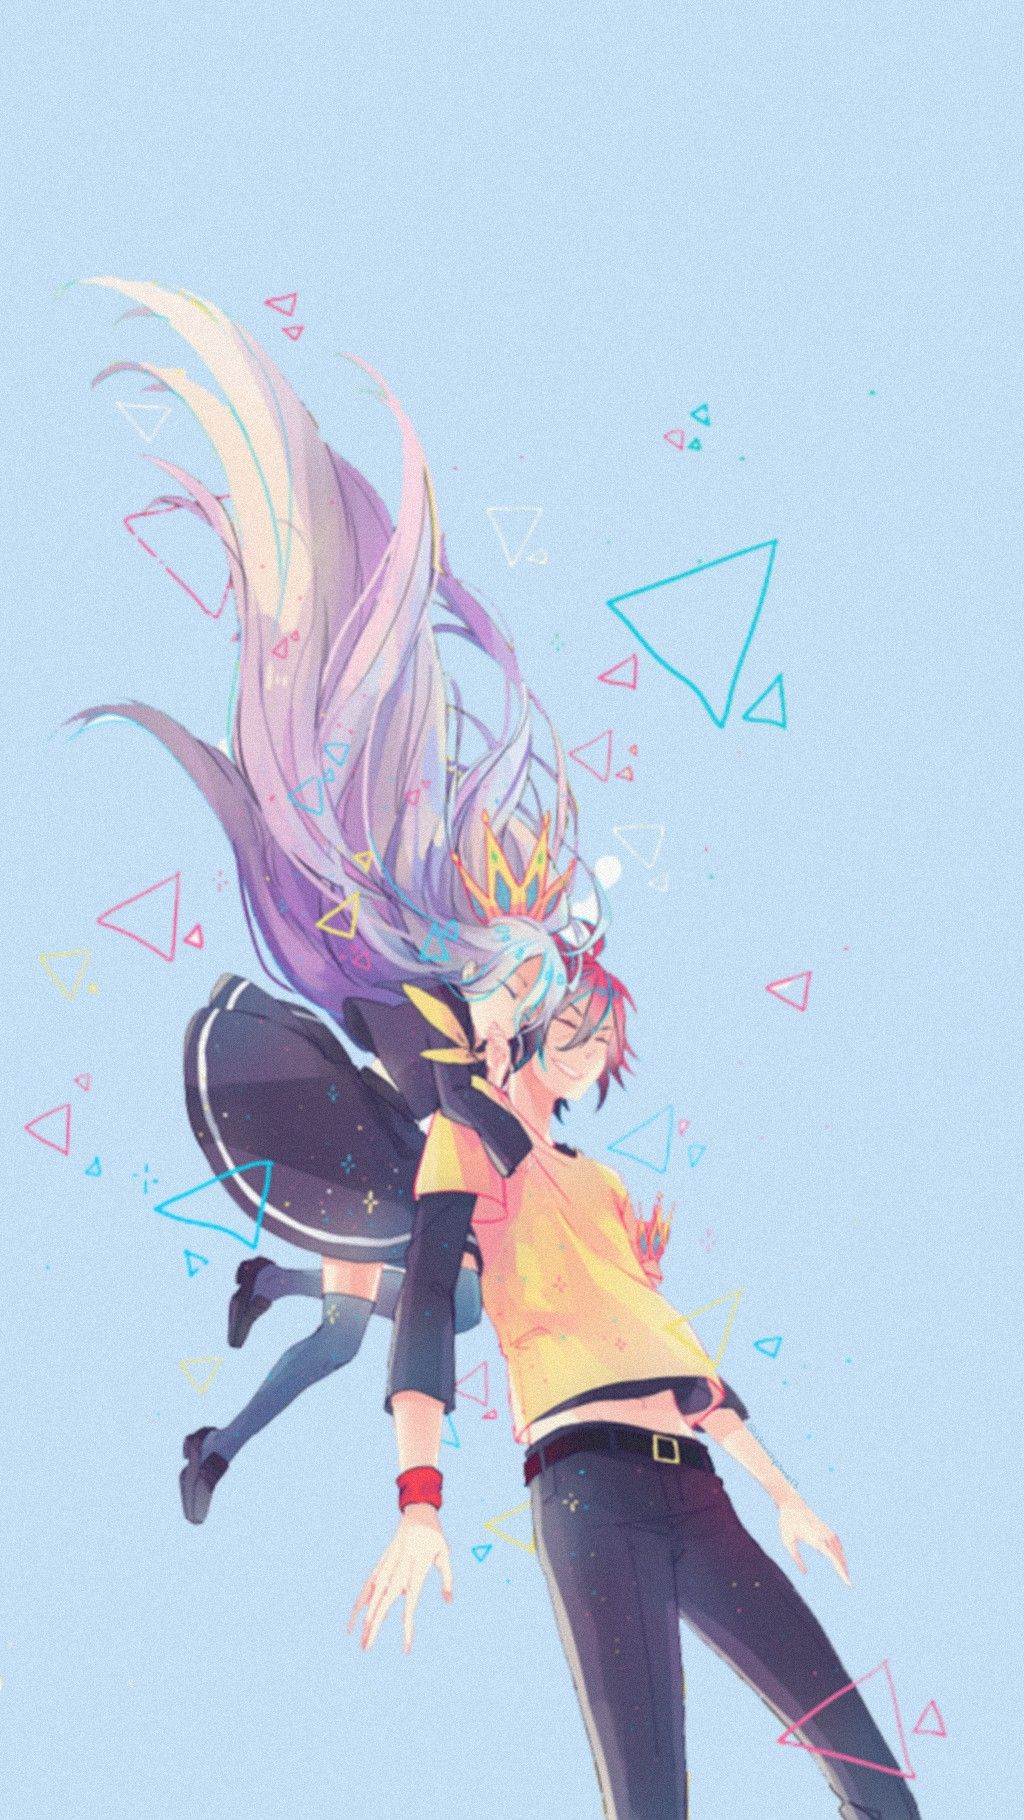 Nogamenolife Shiro Sora Anime Animewallpaper Iphonewall